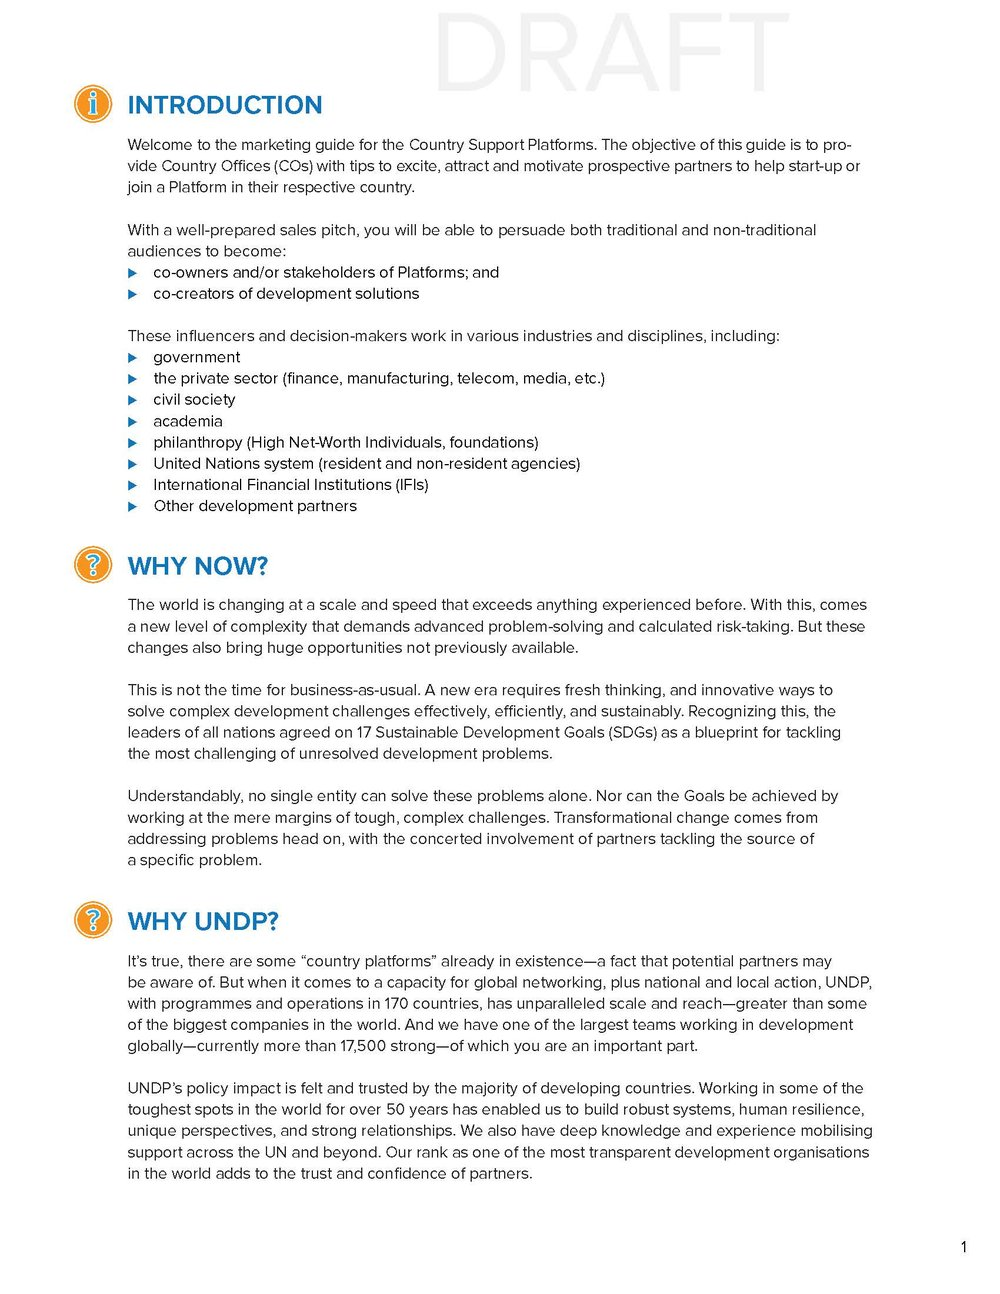 Country-Support-Platform-Marketing-Guide_Page_03.jpg